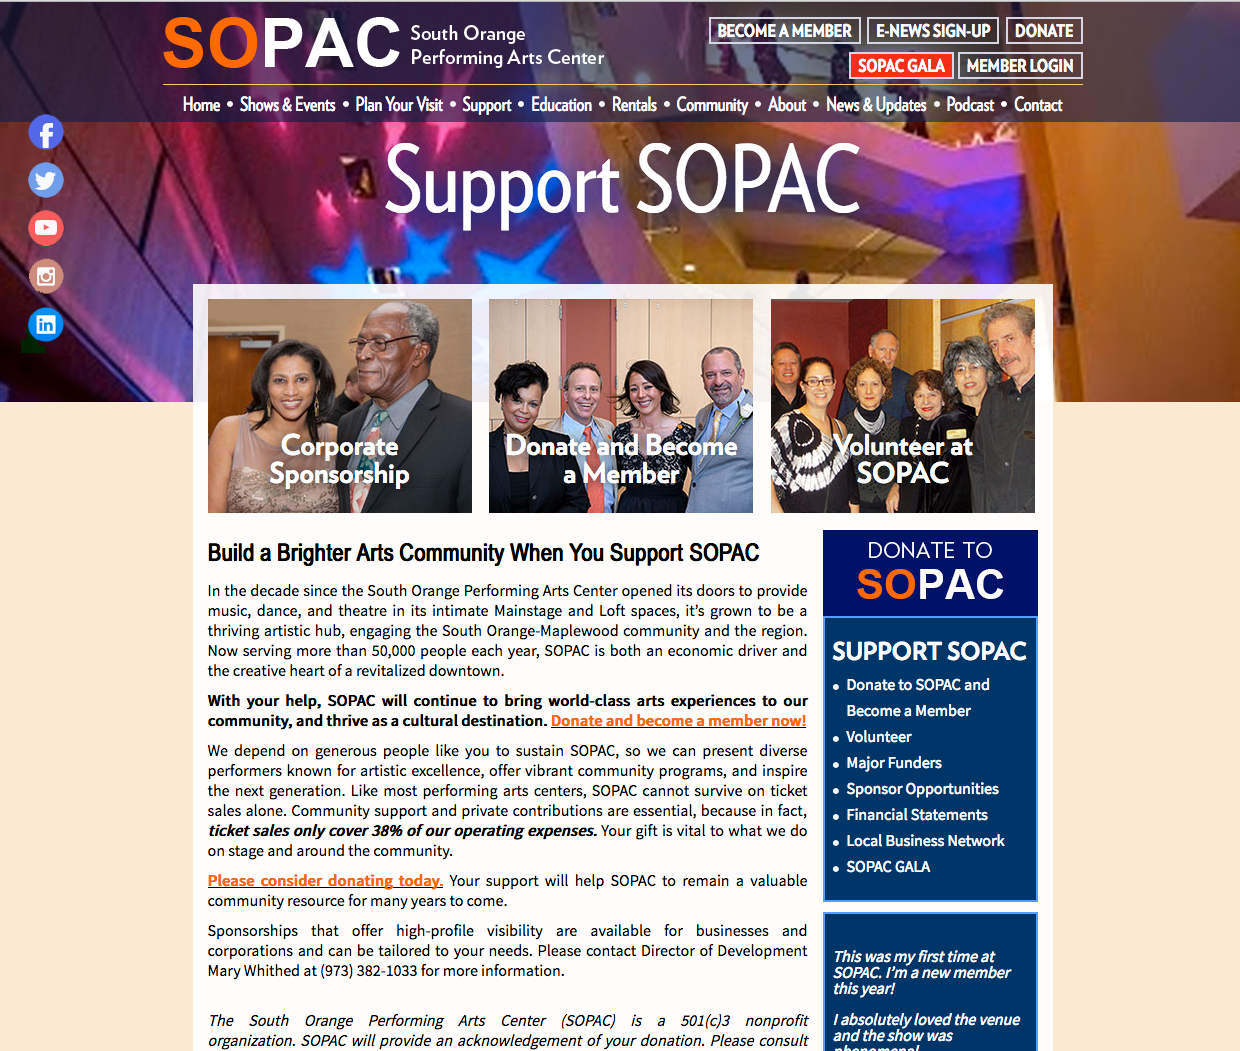 SOPAC - Support, Donations, Membership